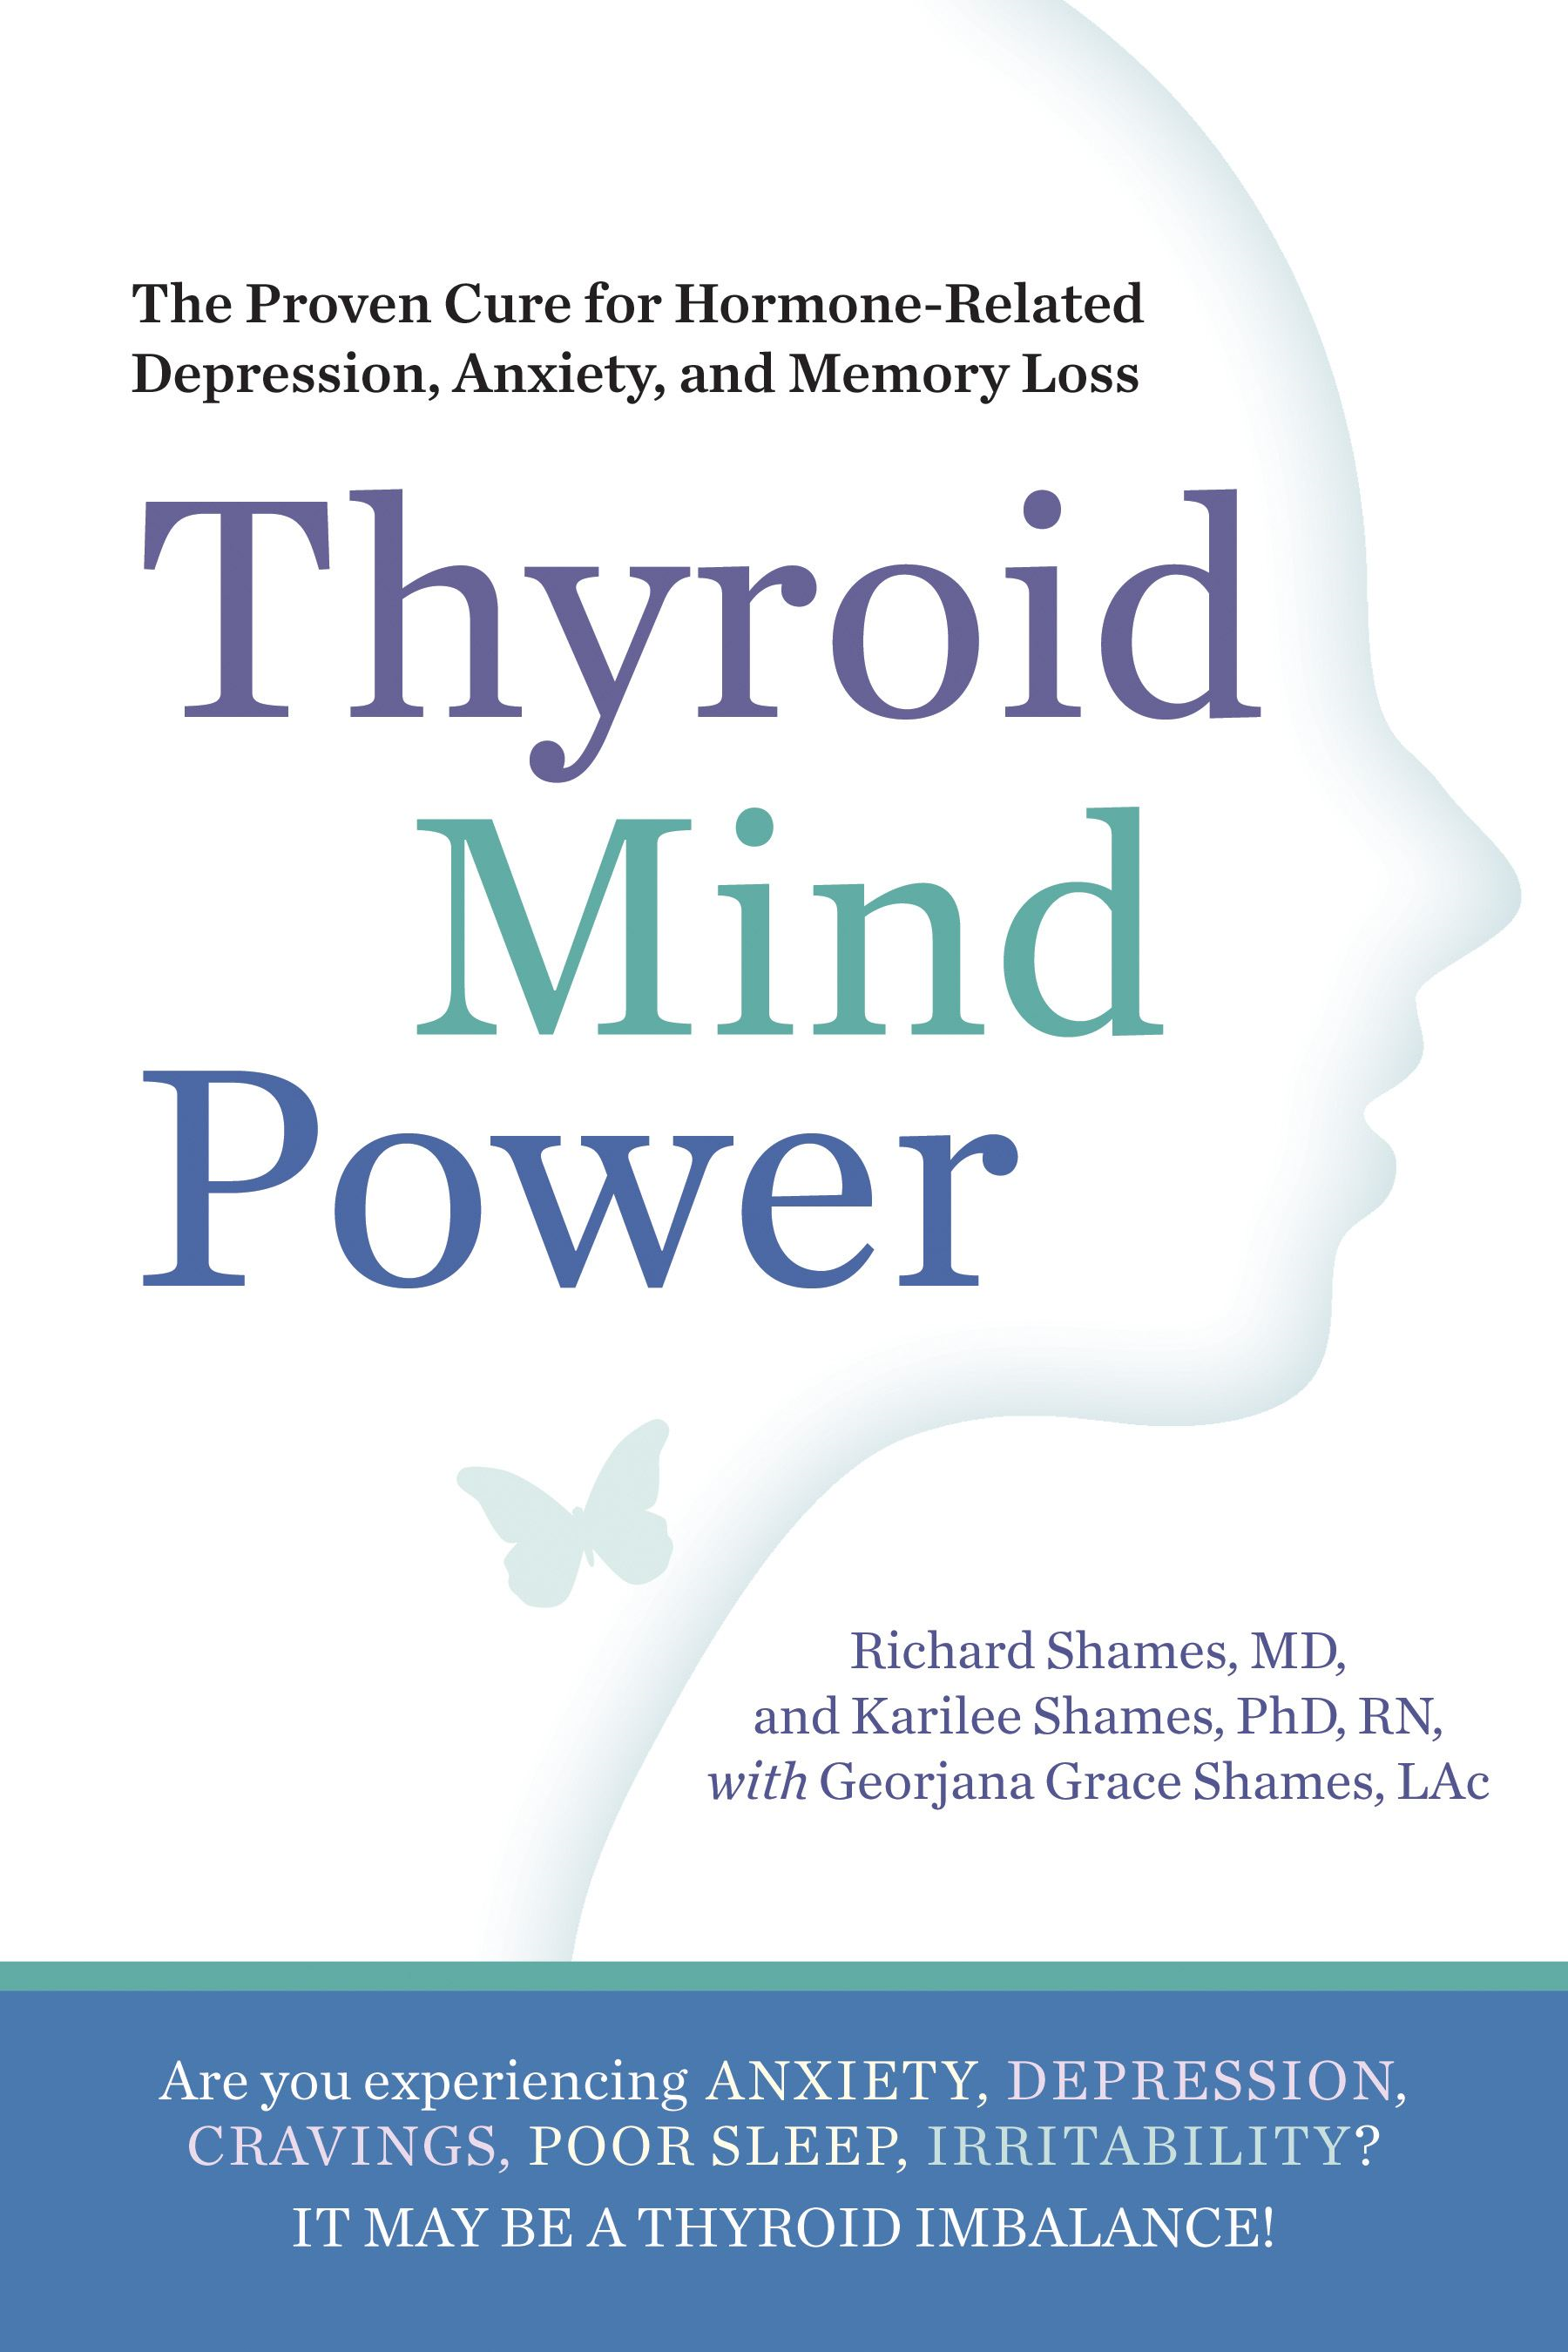 Thyroid Mind Power: The Proven Cure for Hormone-Related Depression Anxiety and Memory Loss